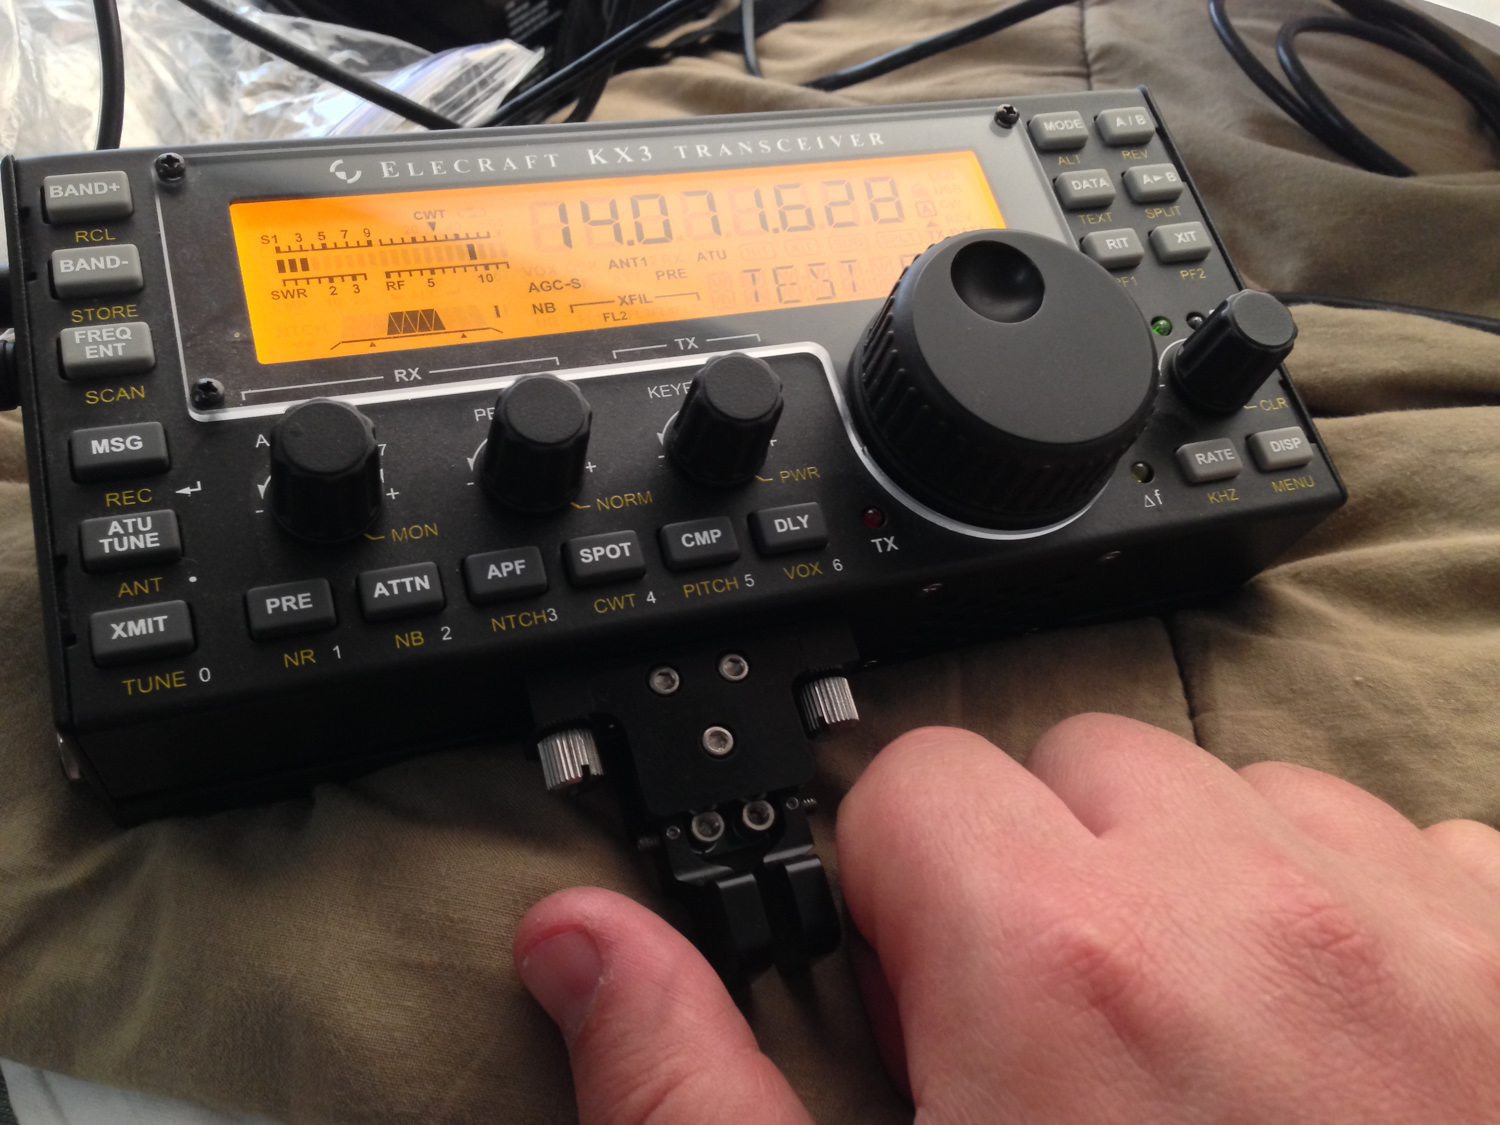 Making a quick CW QSO using the KX3 from the camper.